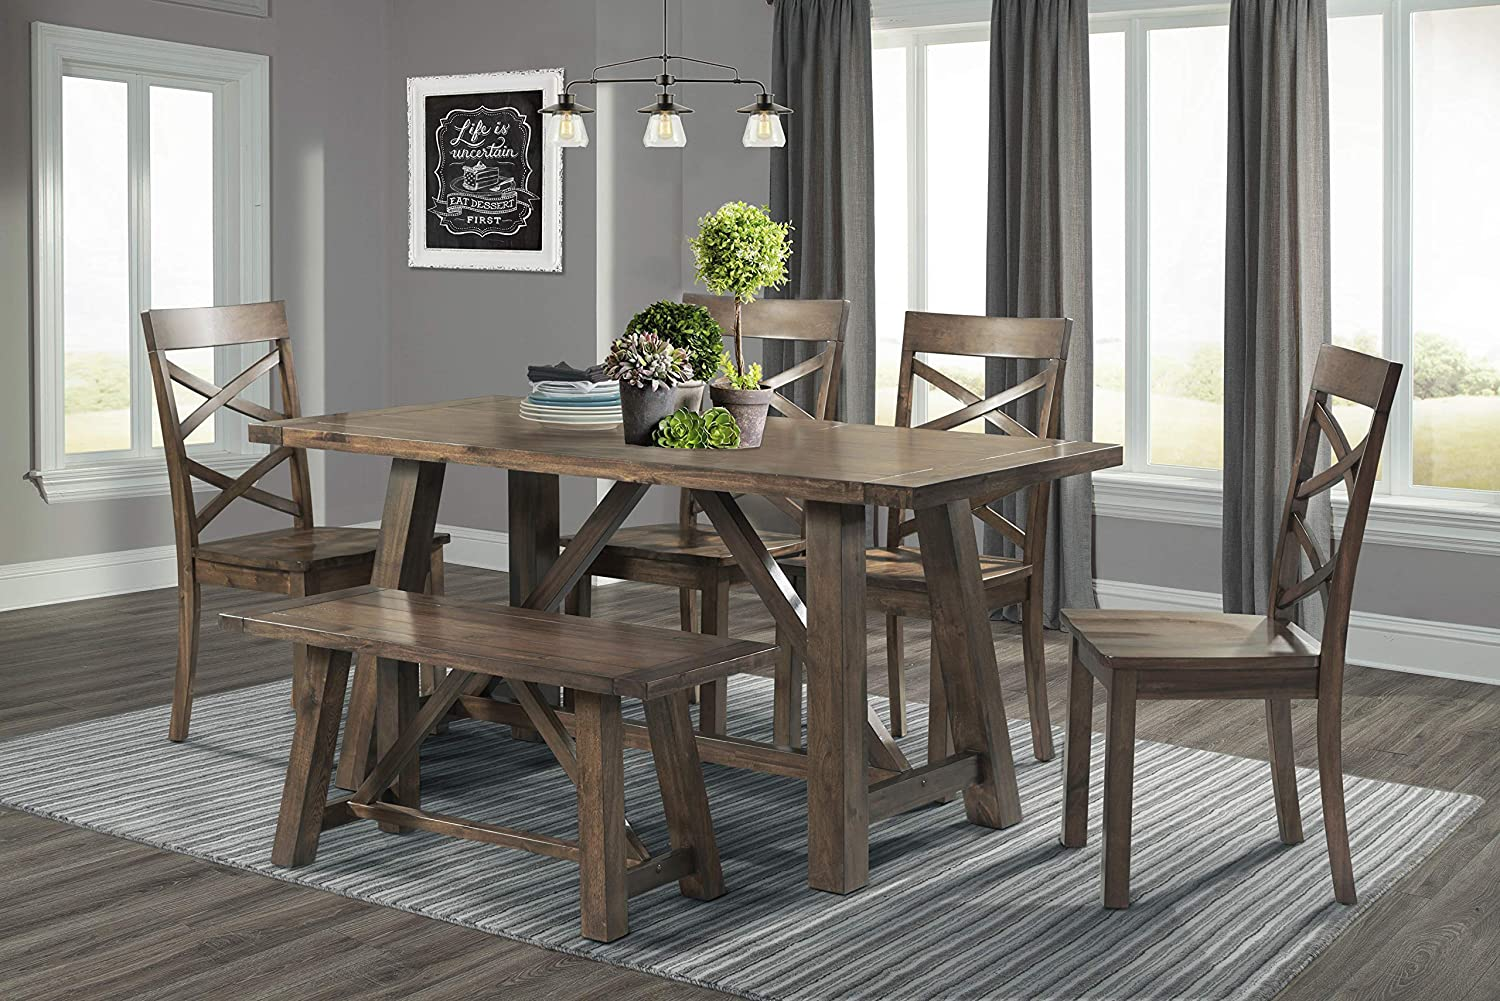 Amazon Com Picket House Furnishings Regan 6pc Dining Set Table 4 Side Chairs Bench Table Chair Sets